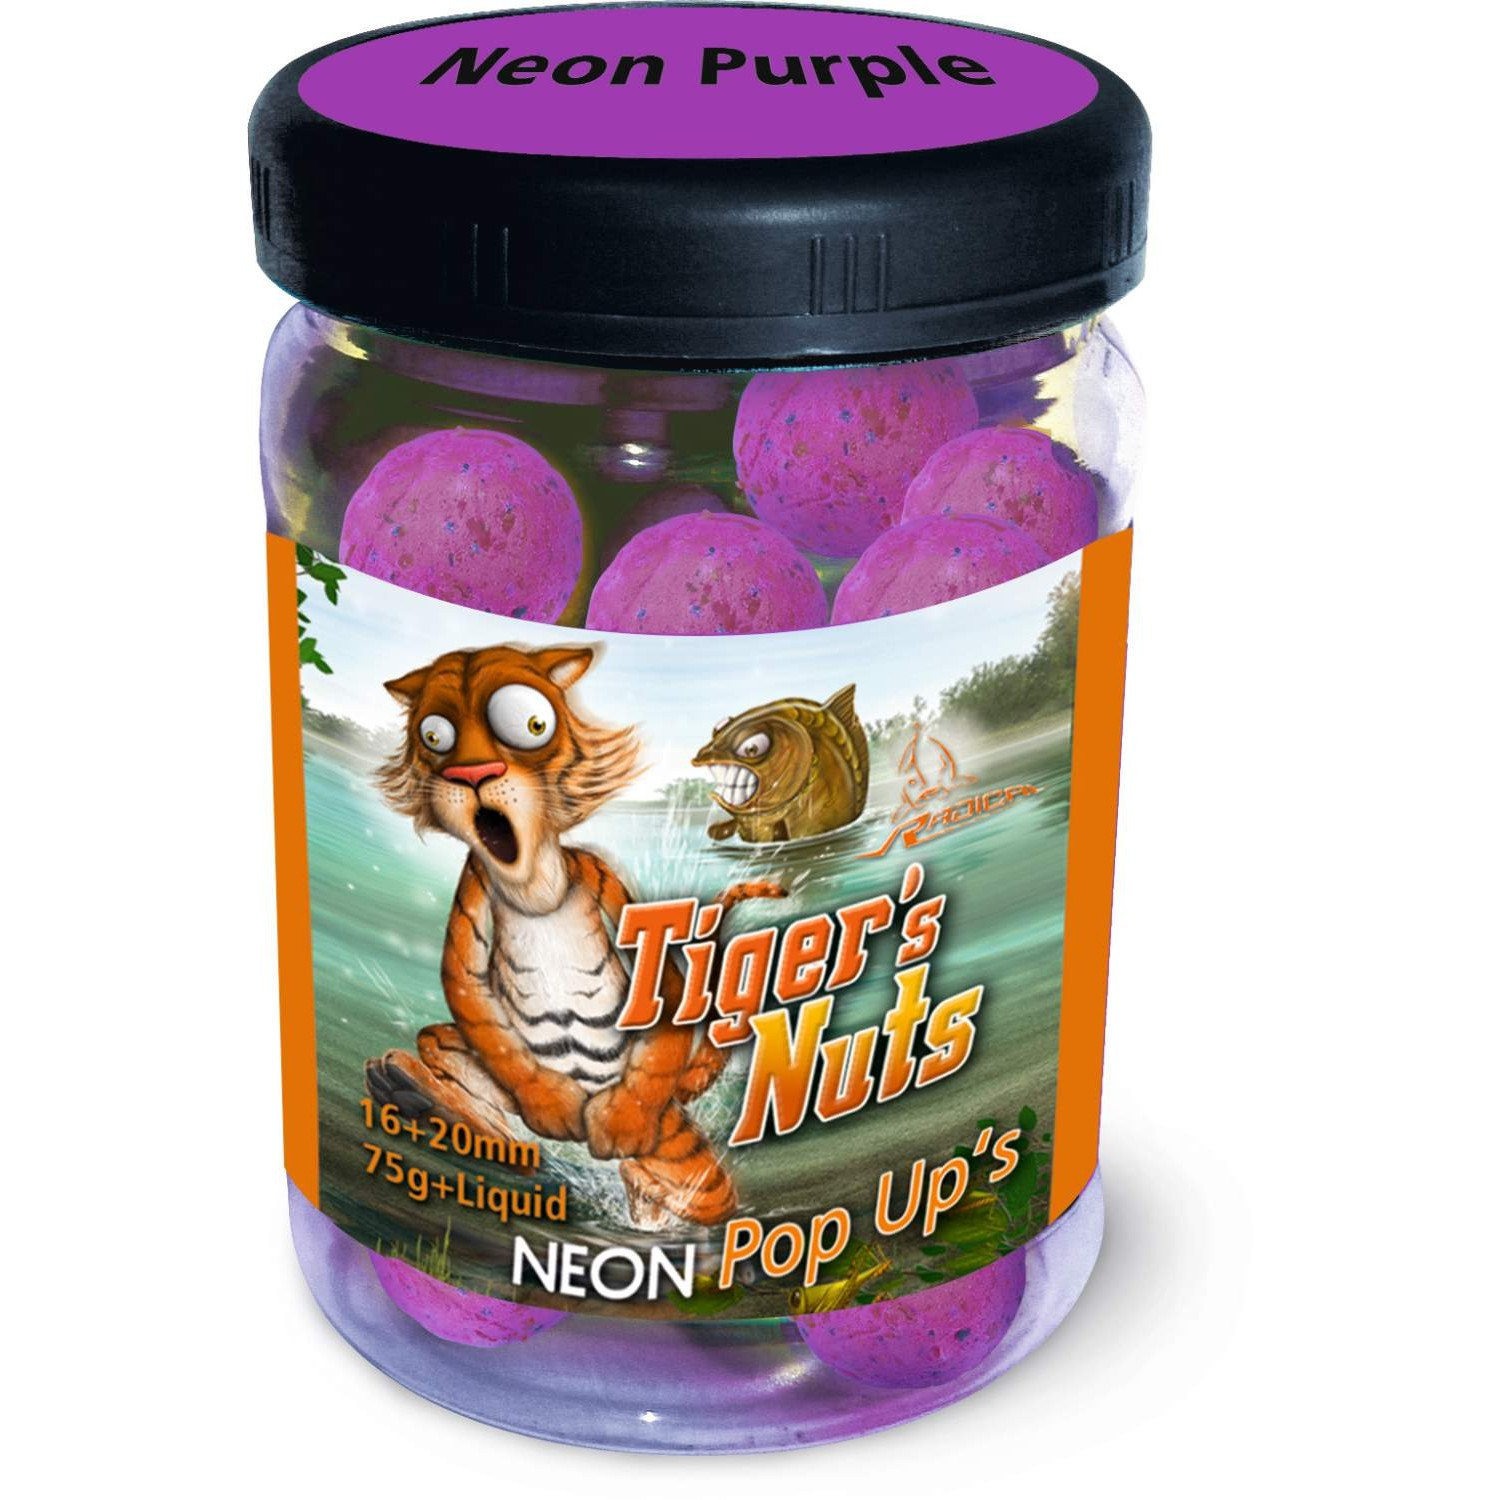 QUANTUM Radical Tiger's Nuts Neon Pop Up?s 75g, 16mm